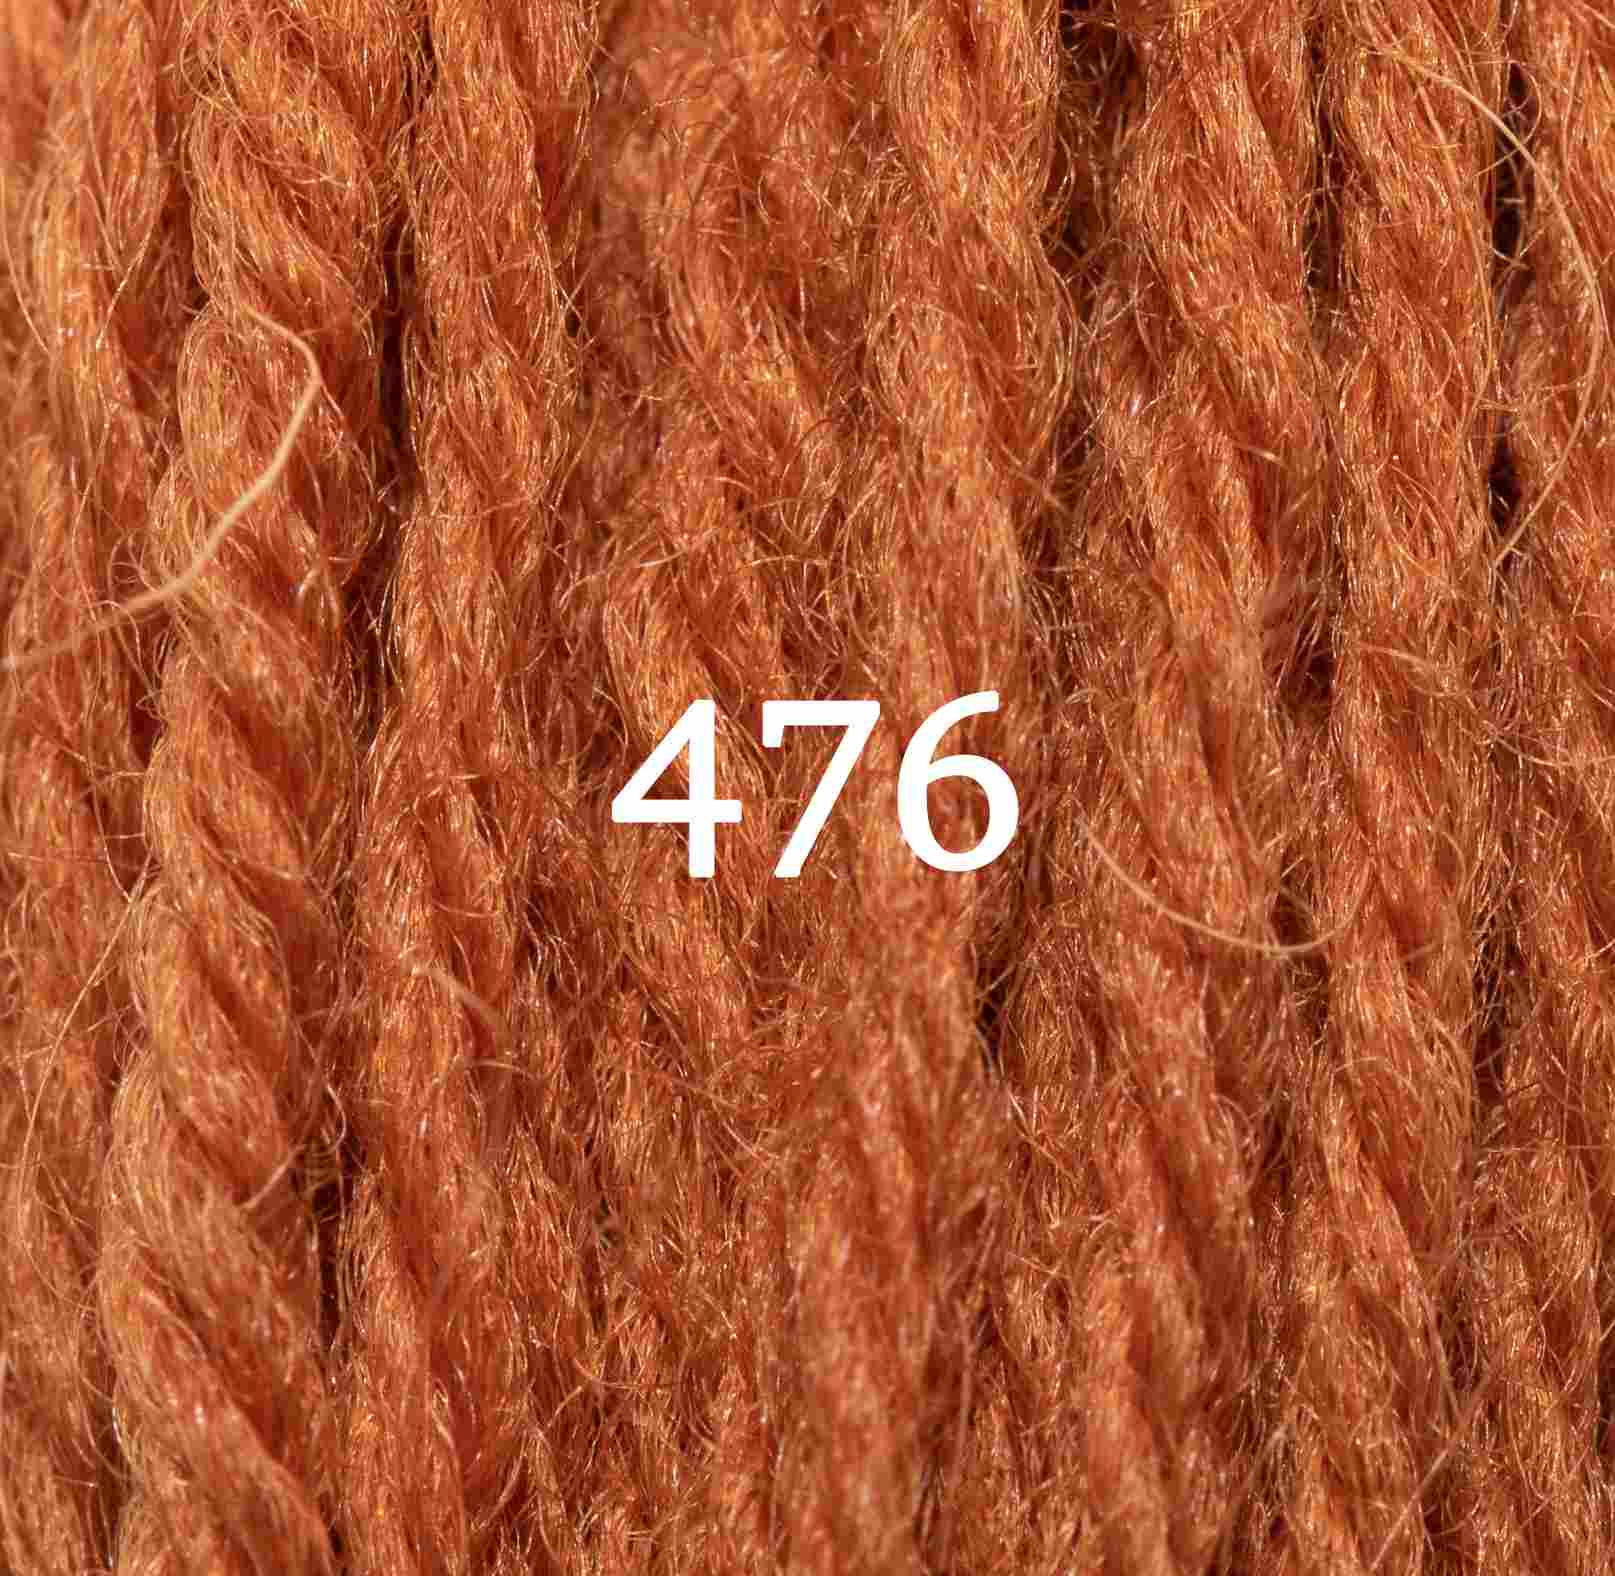 Autumn-Yellow-476-discontinued-use-477